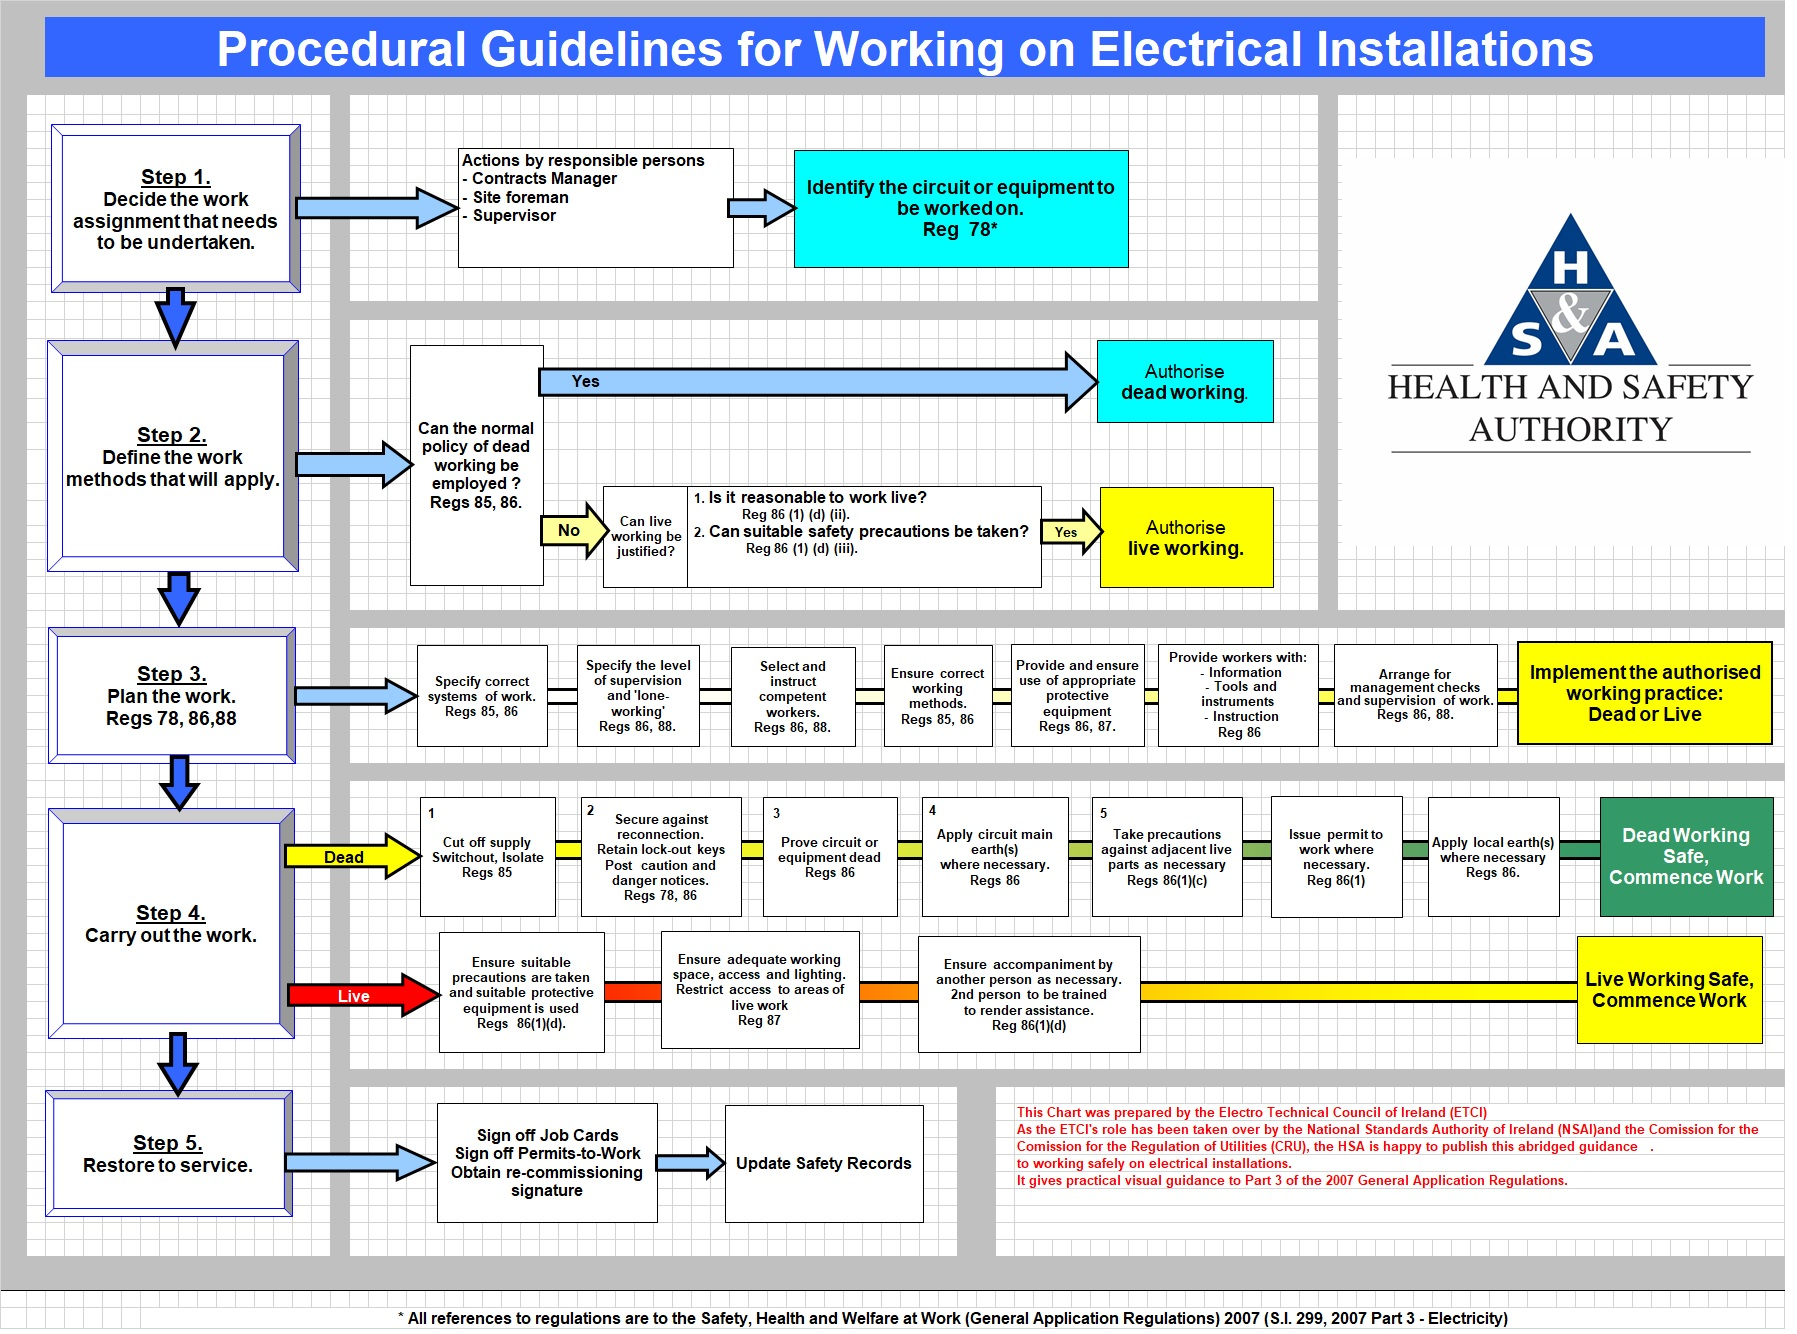 Procedural Guidelines for Elec Installations